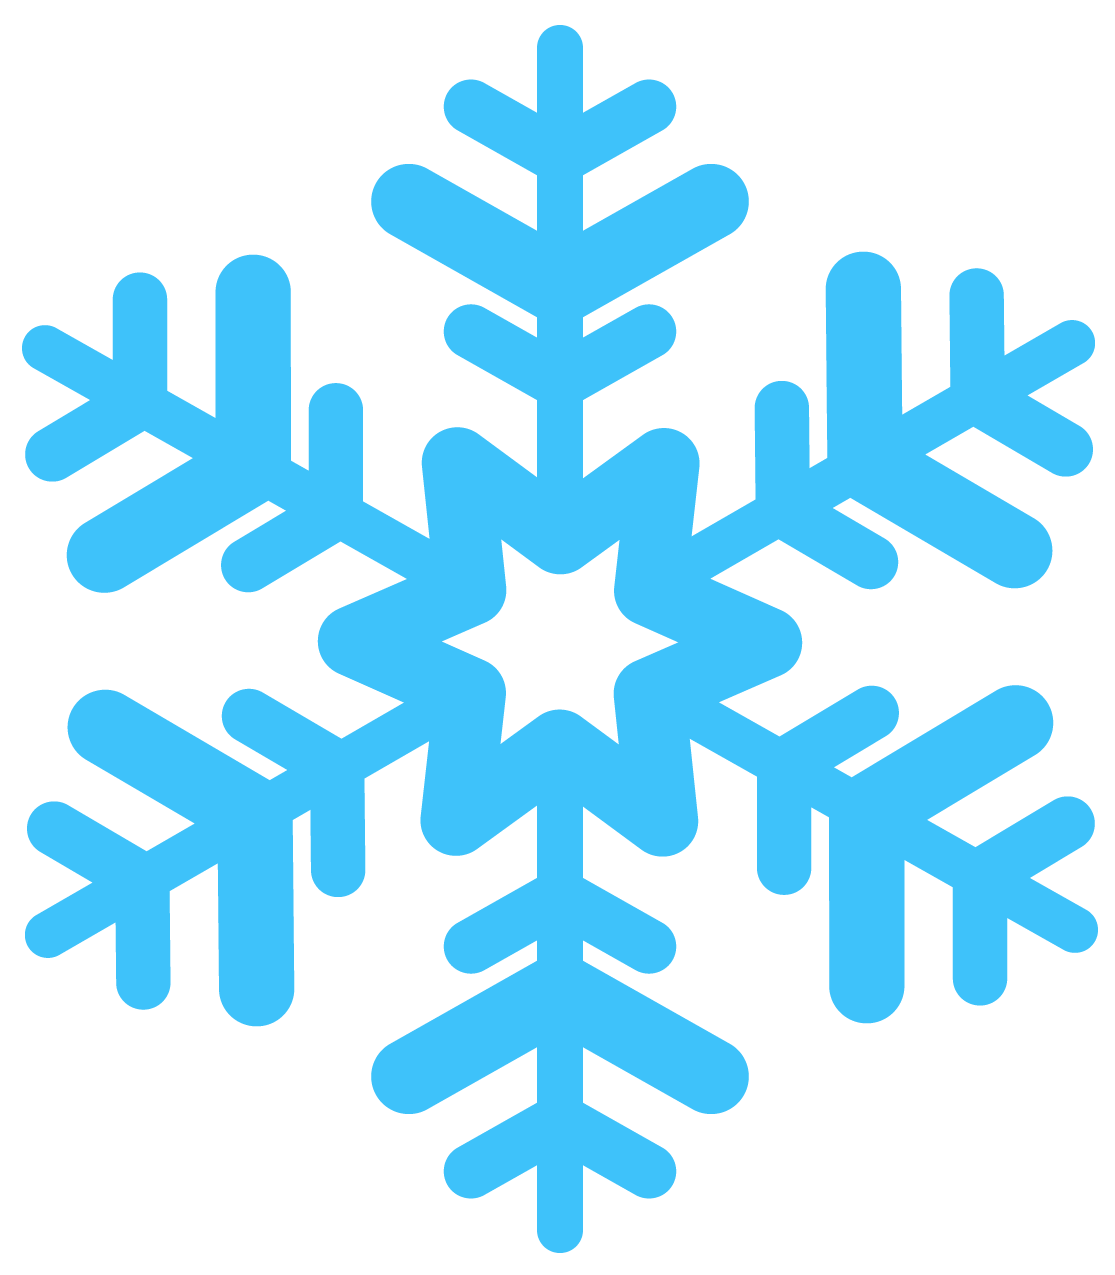 snowflake load file to table tutorial guide